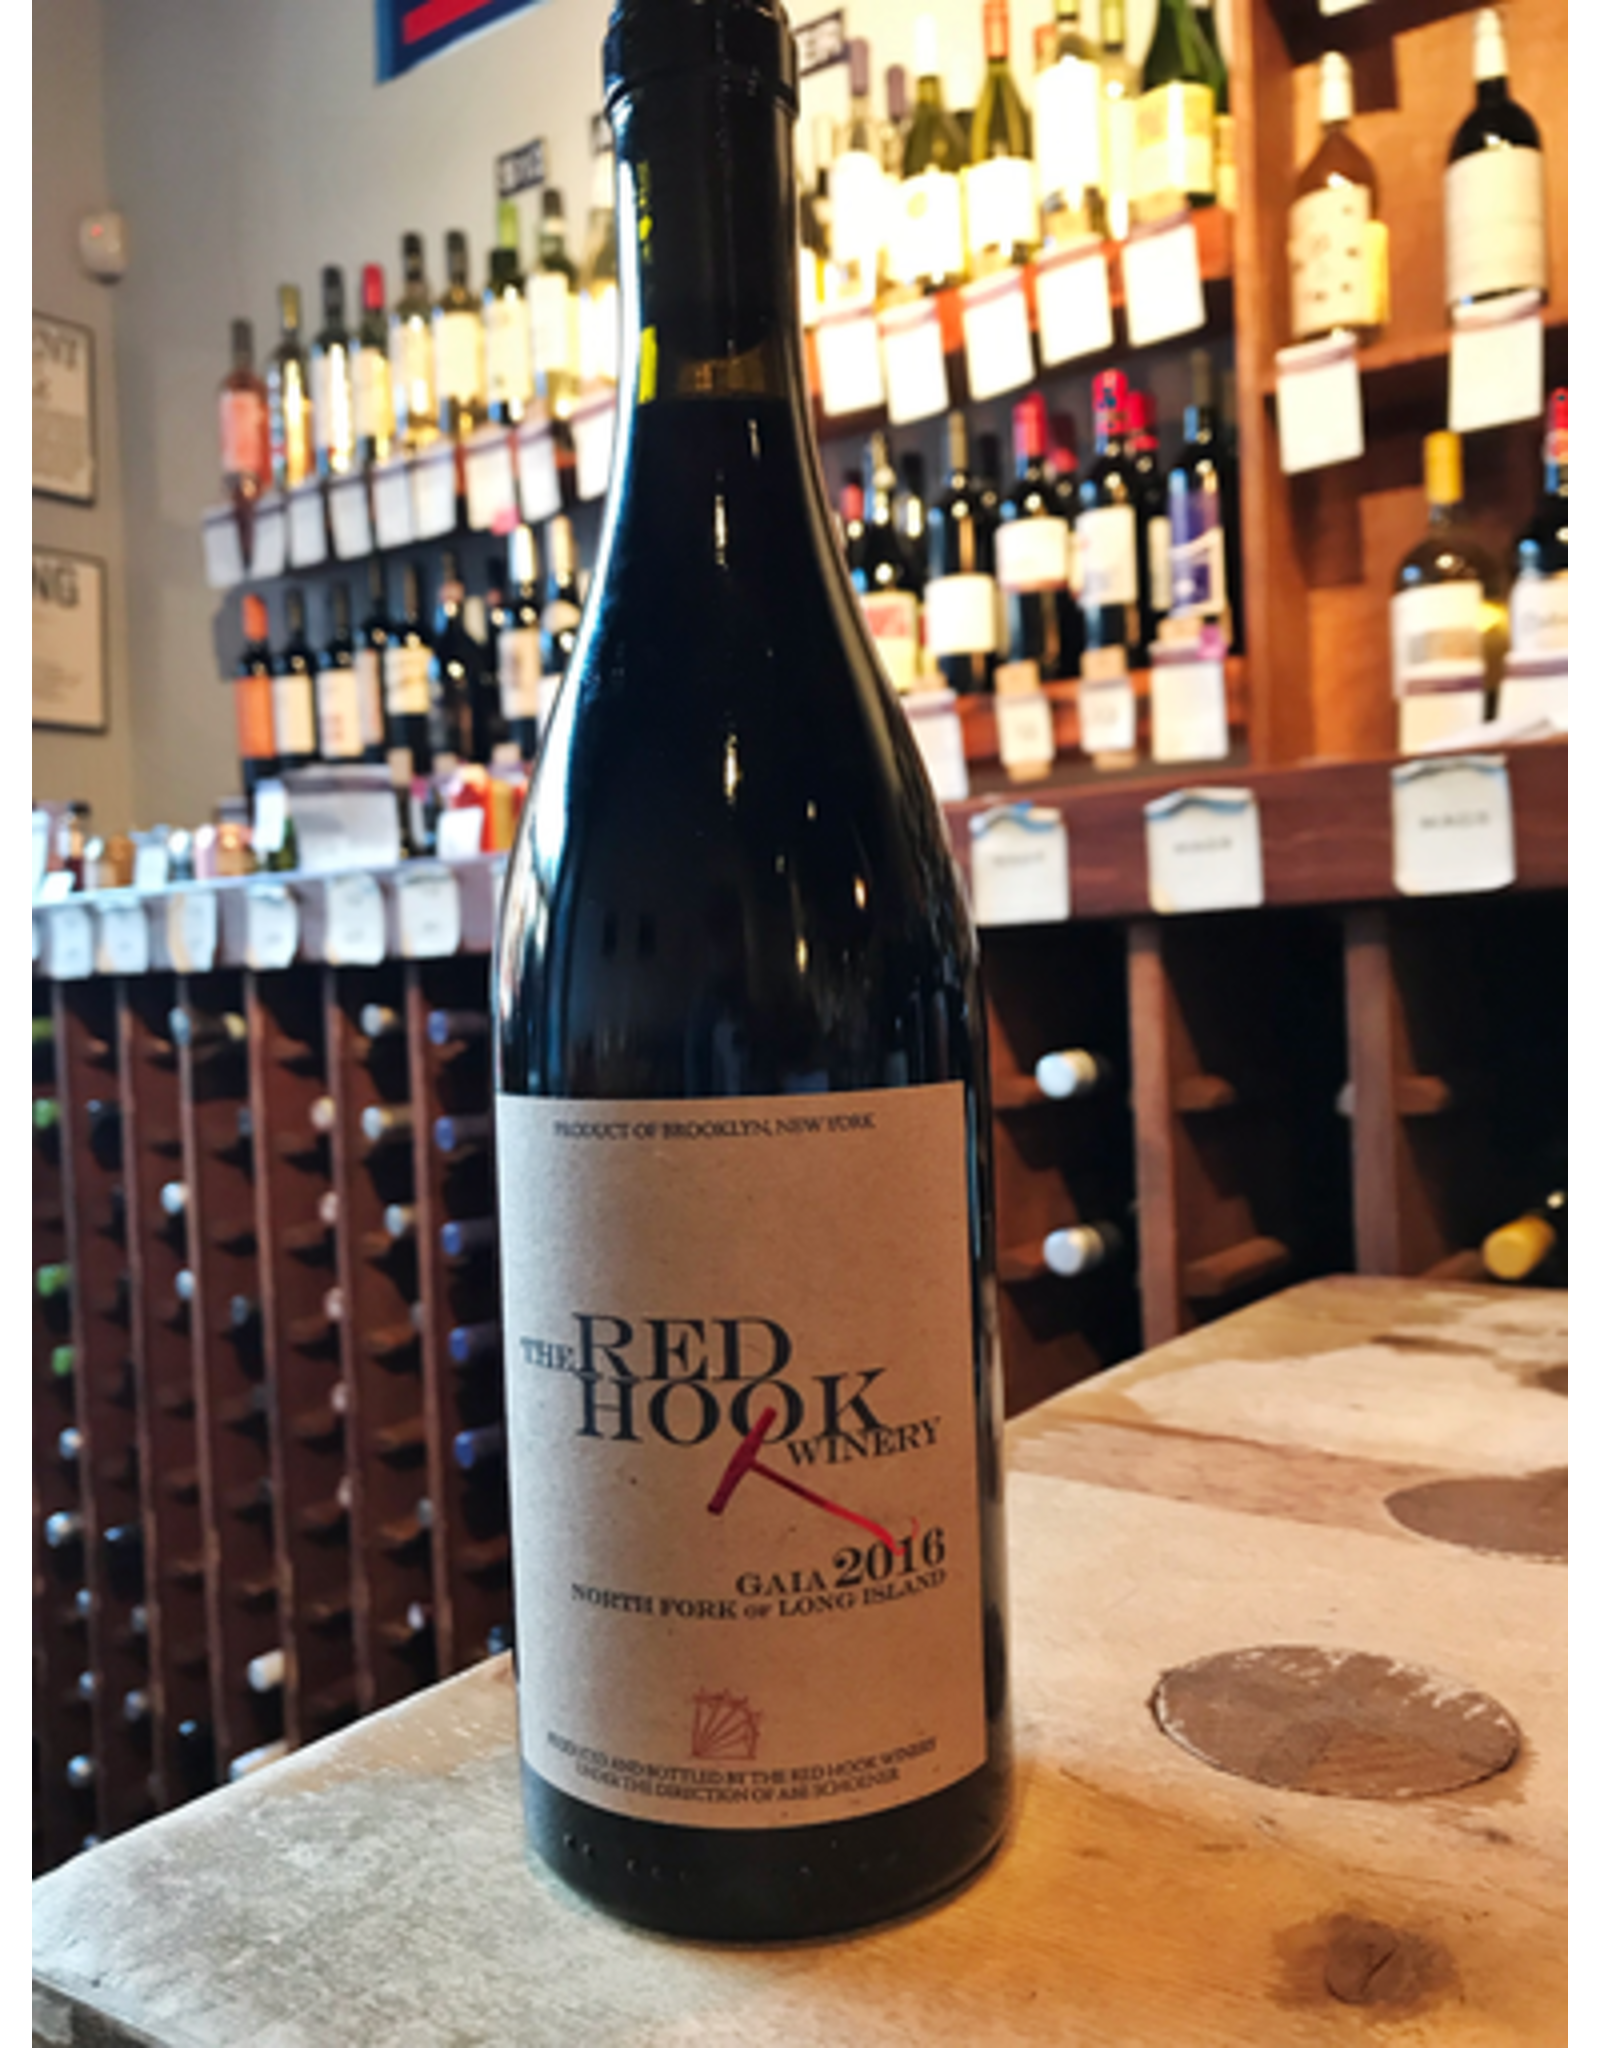 2016 The Red Hook Winery Gaia Red Blend - North Fork of Long Island, NY